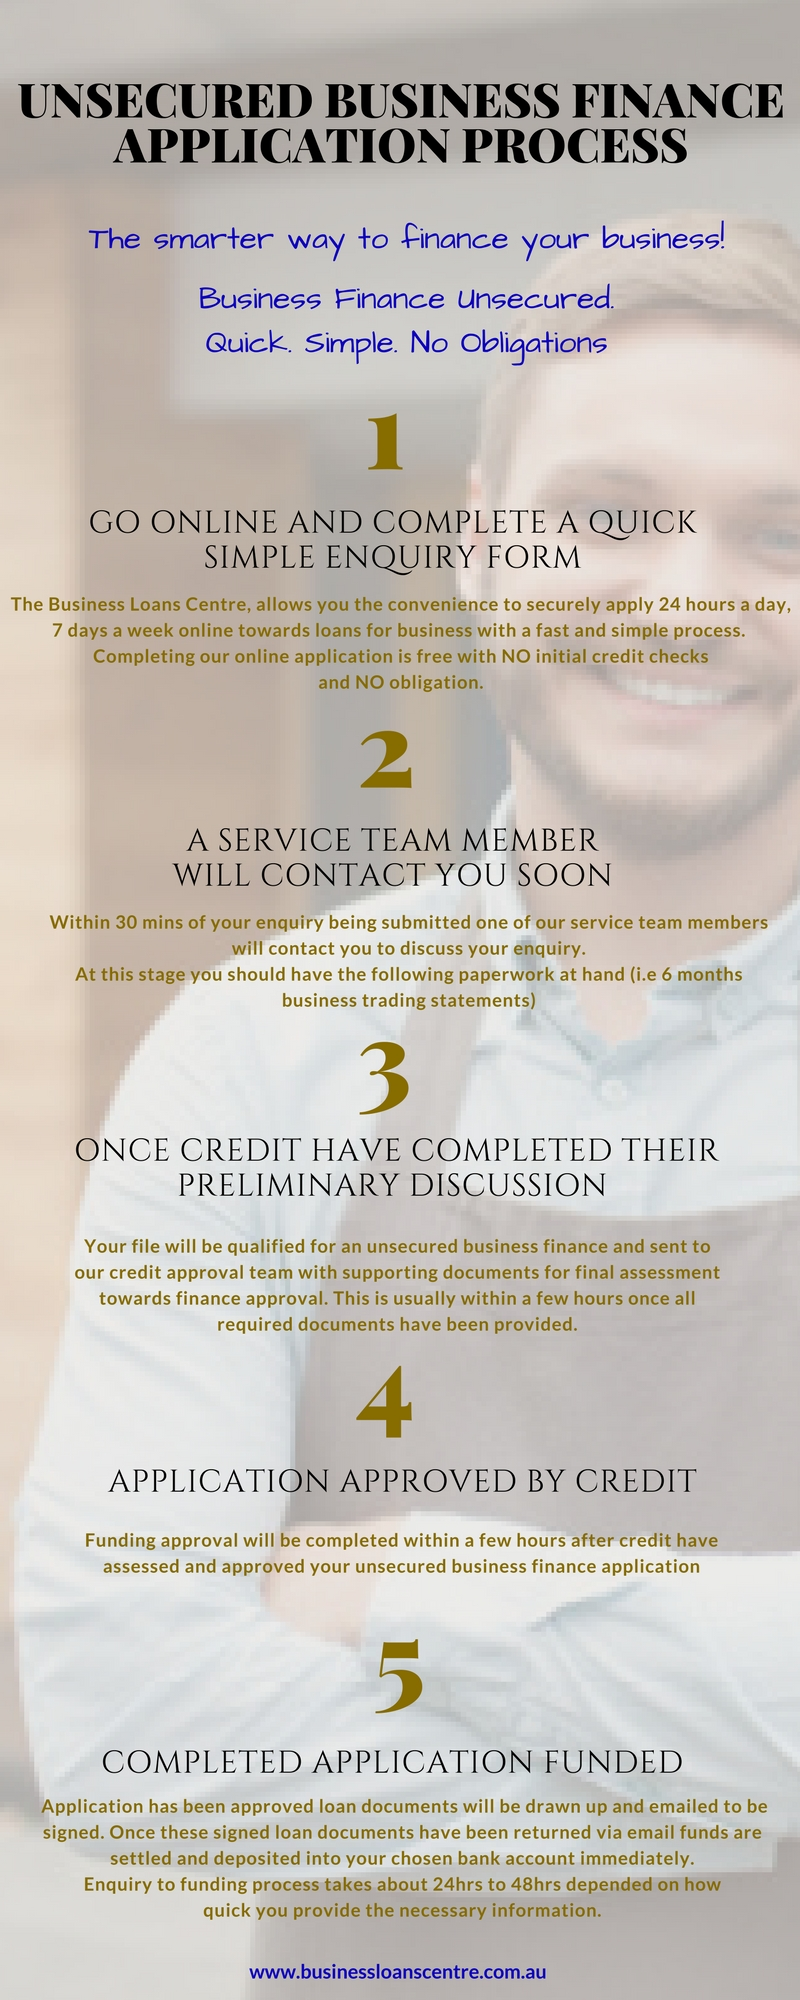 unsecured business finance approval process infographic